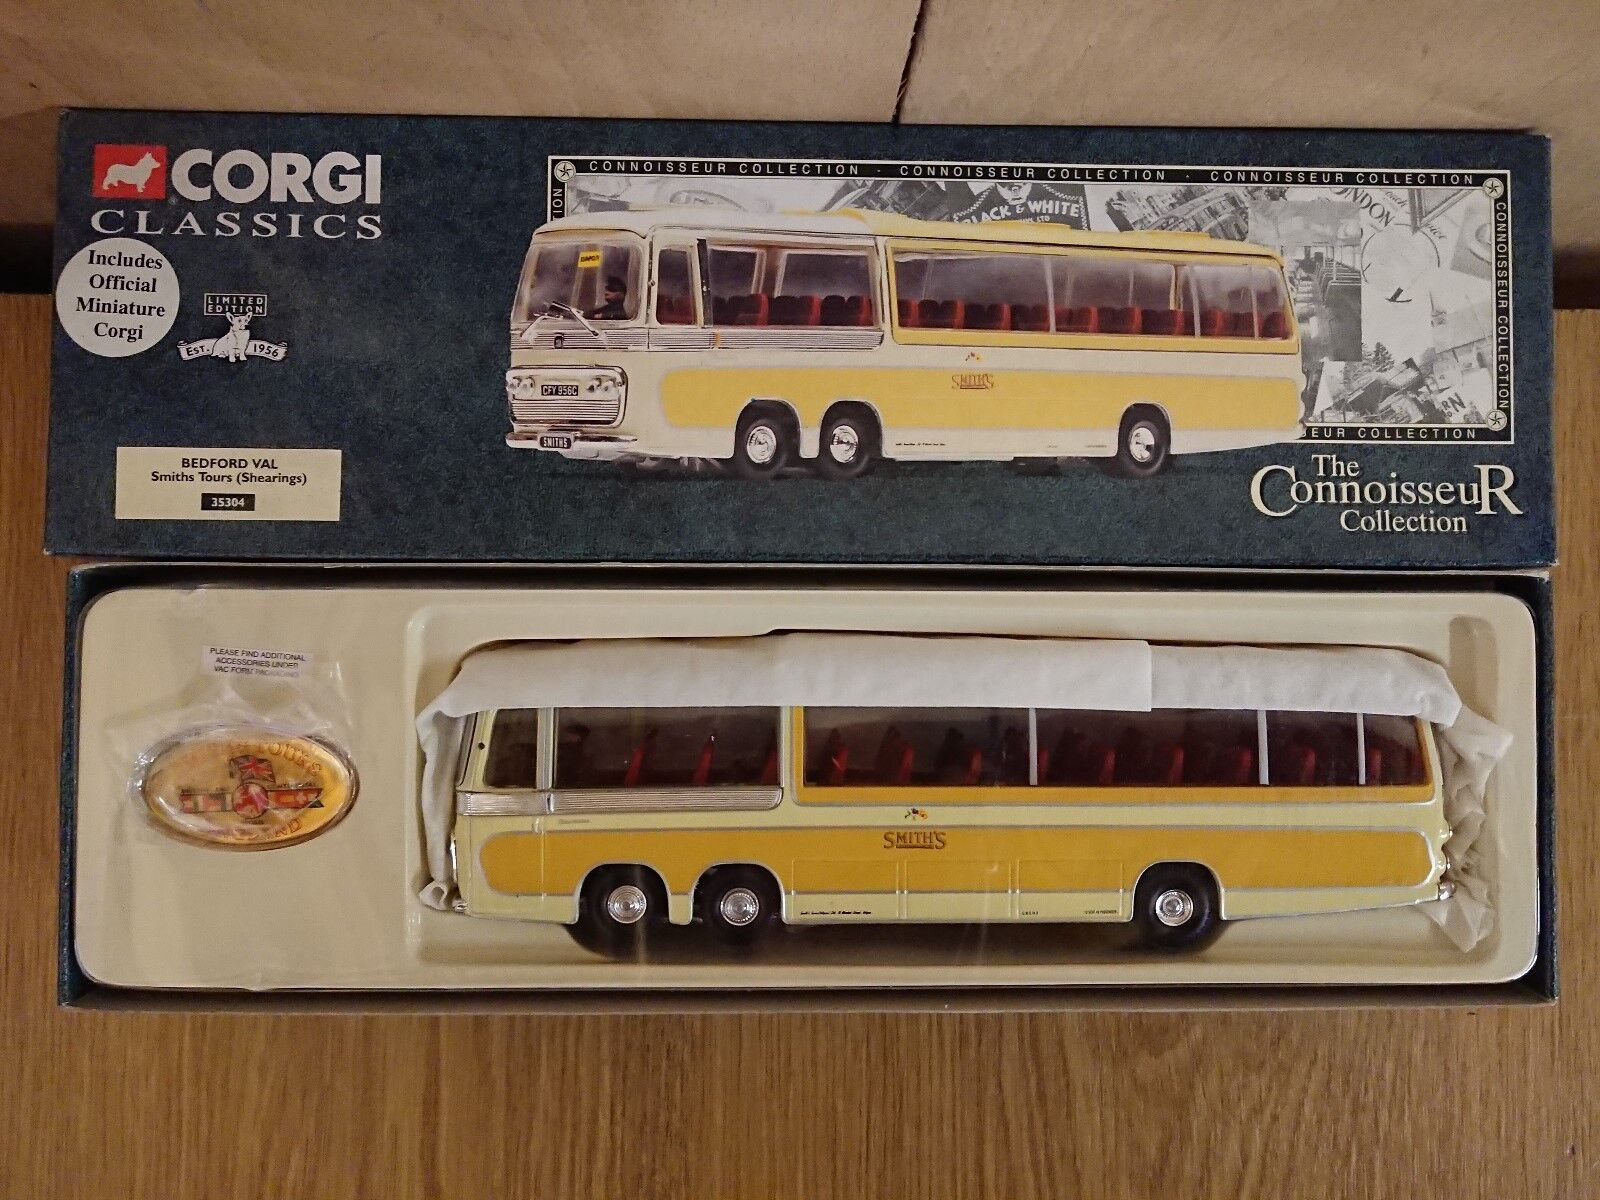 Corgi Clásicos 35304 Bedford Val Smiths Tours (shearings) Ltd Ed Nº 0004 de 5000